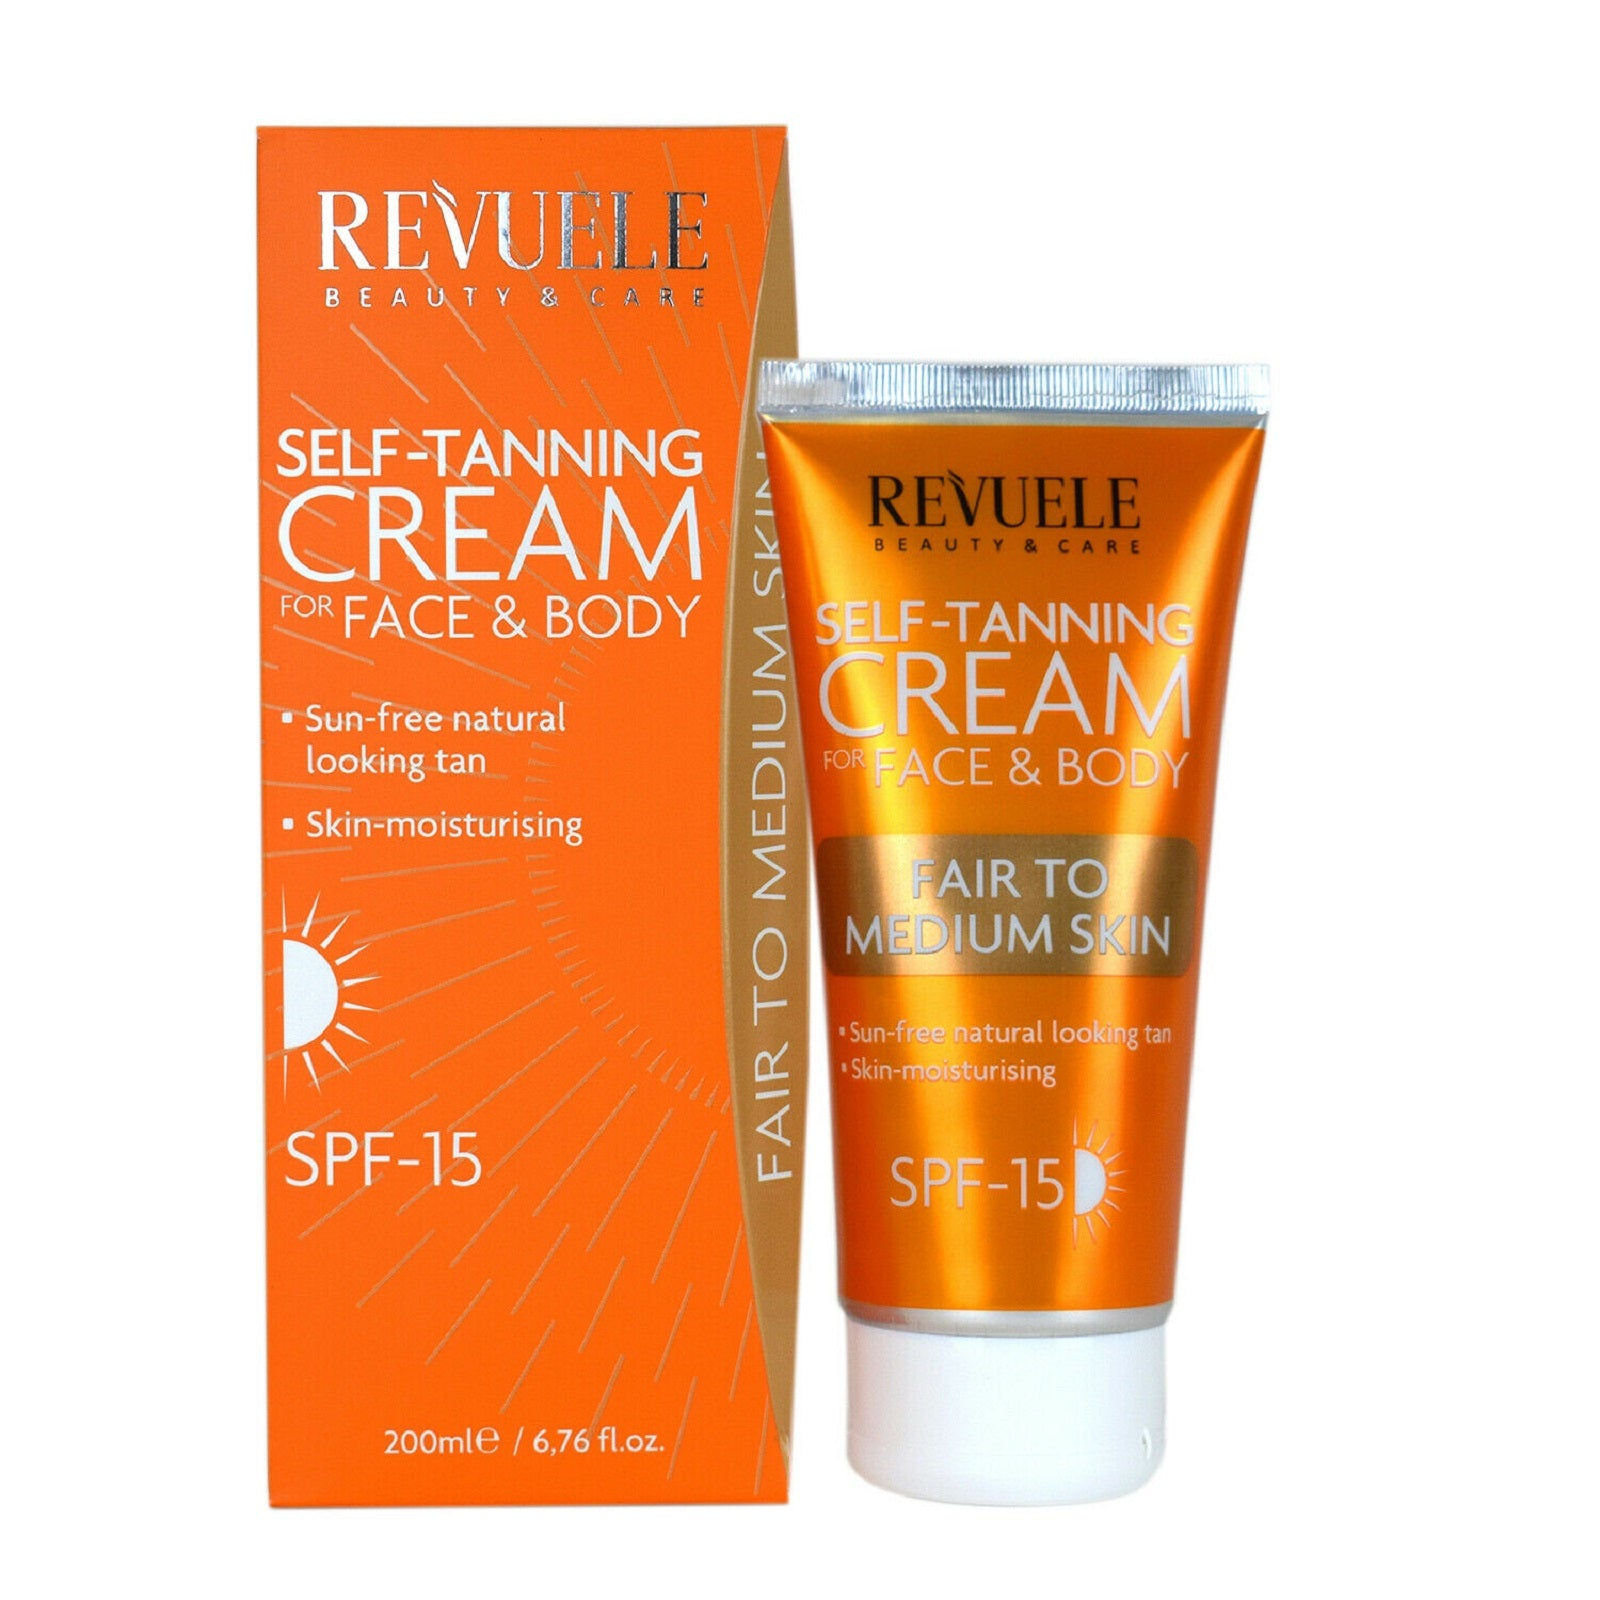 Revuele Self-Tanning Cream Fair To Medium Skin